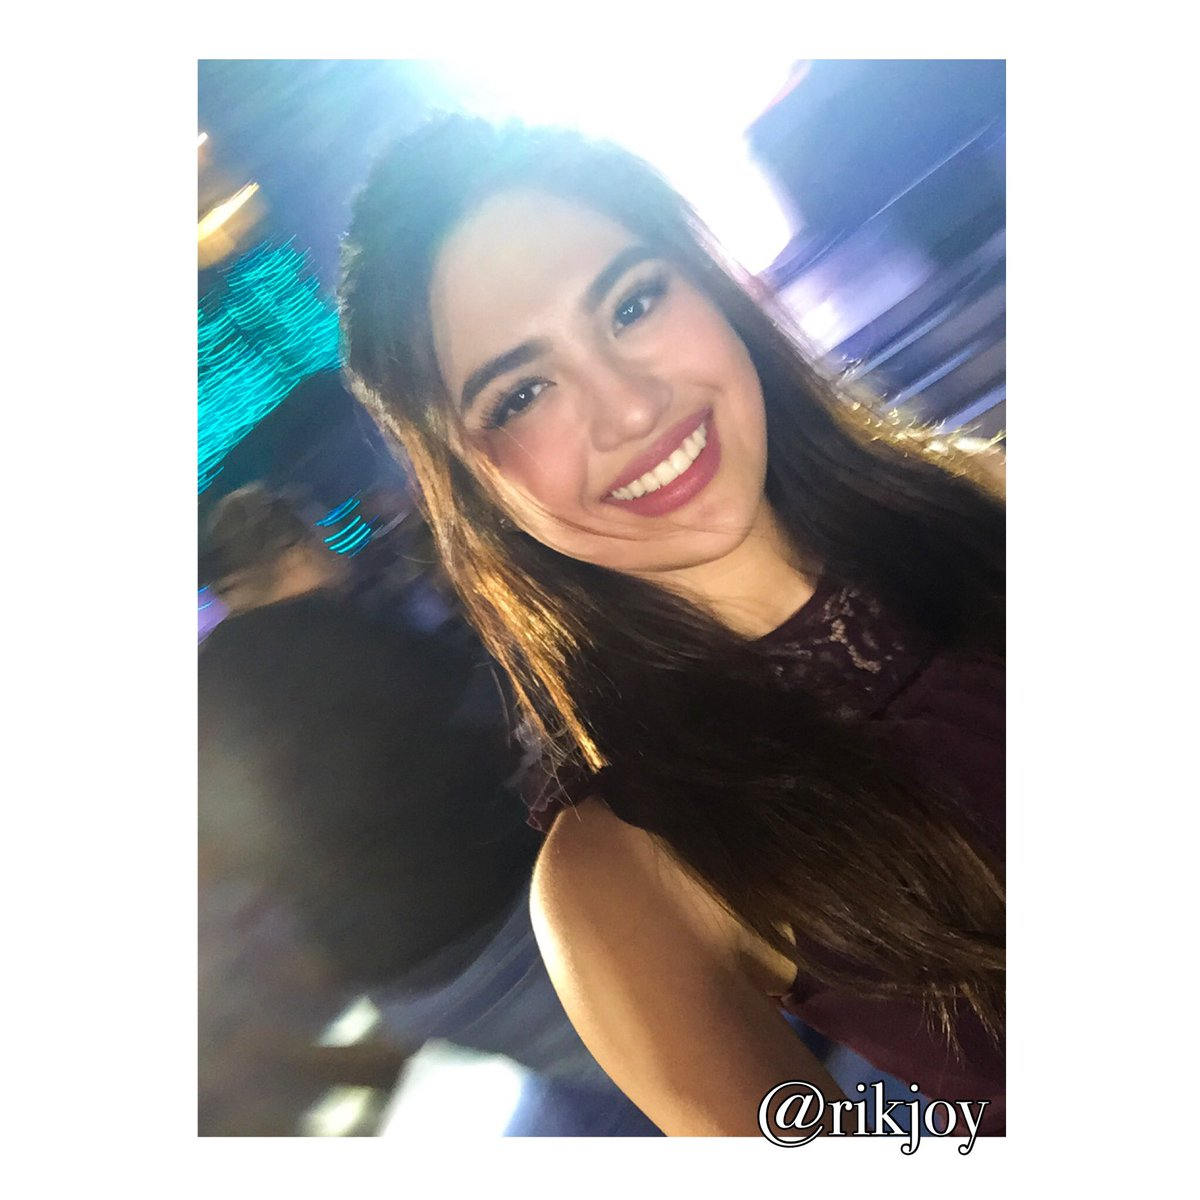 @MyJaps' selfie during the mallshow. https://t.co/88vmQHKOu9